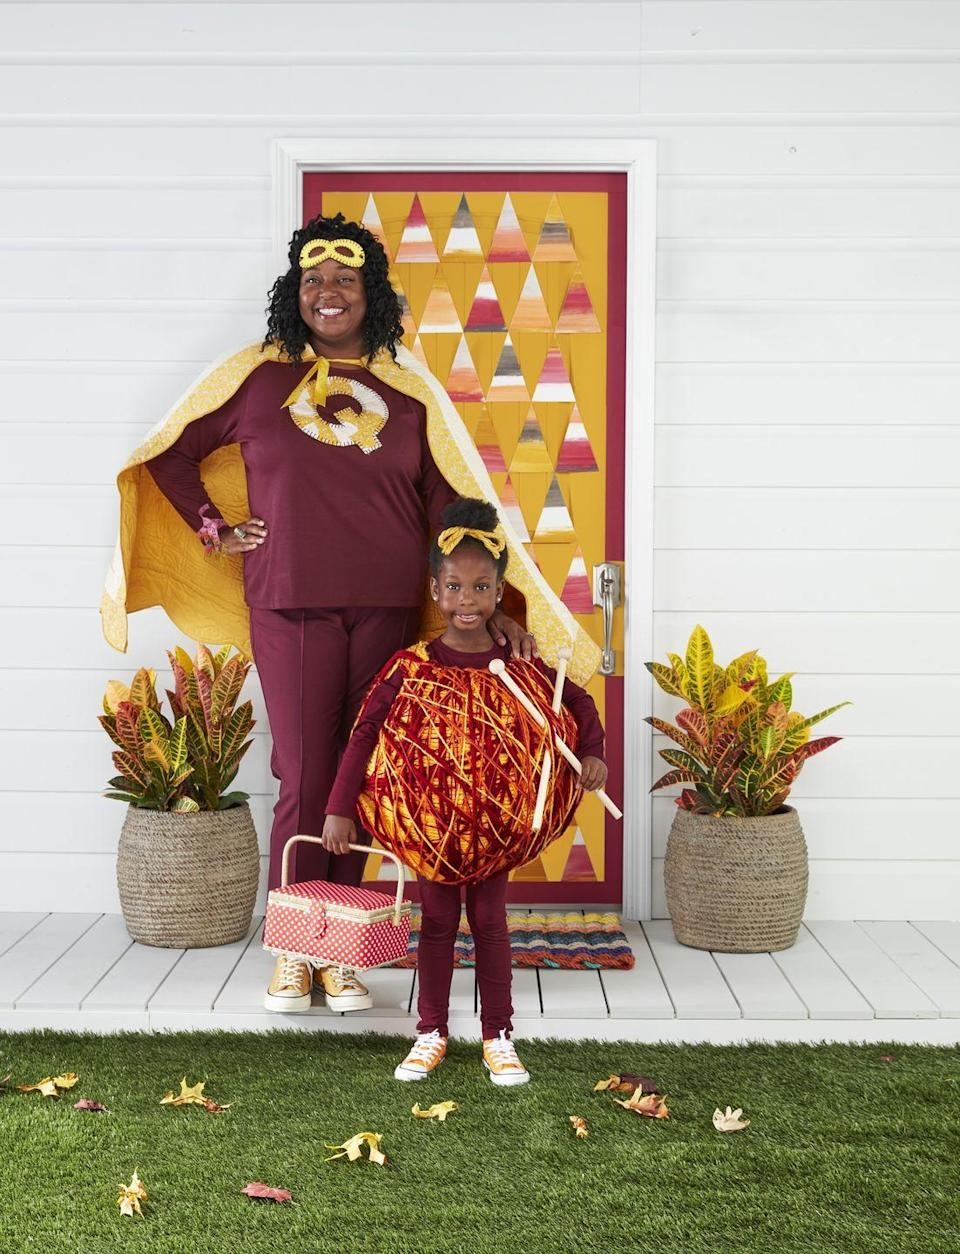 """<p>It's a bird, it's a plane, it's Korliss and Zoe, here to save the universe one stitch at a time! This stylish superhero duo comes armed with a superhuman eye for detail.</p><p><strong>Make the Quilt Mom Costume:</strong> Cut a quilt into a trapezoid shape; sew a corresponding color bias tape around the edges to finish. At the top corner of the trapezoid, sew a corresponding color ribbon for ties. Use a scrap of the quilt to cut out an oversize letter """"Q"""" and blanket stitch it to the front of a T-shirt. Blanket stitch around the edges of a felt superhero mask and round out the look with a tailor tape measure bracelet adorned with sewing charms. Glue a metal thimble to a silver ring blank to create a superpower ring. </p><p><strong> Make the Yarn Ball Costume: </strong>Measure child's shoulder width and head diameter. Blow up an 18- to 24-inch round balloon or beach ball (the size will depend on child's height). Mold <a href=""""https://www.amazon.com/Craft-Wrap-Plaster-Bandage-Single/dp/B000F5VHQQ?tag=syn-yahoo-20&ascsubtag=%5Bartid%7C10050.g.29074815%5Bsrc%7Cyahoo-us"""" rel=""""nofollow noopener"""" target=""""_blank"""" data-ylk=""""slk:CraftWrap"""" class=""""link rapid-noclick-resp"""">CraftWrap</a> around the balloon or ball, leaving wide enough openings on the top (for the head) and the bottom (for the head and shoulders) to pass through; allow to dry.</p><p>Remove balloon or beach ball. Adjust openings if needed and use an X-Acto knife to cut out armholes. Coil a base layer of <a href=""""https://www.amazon.com/Caron-Simply-Paints-Worsted-Acrylic/dp/B06XGTPL73?tag=syn-yahoo-20&ascsubtag=%5Bartid%7C10050.g.29074815%5Bsrc%7Cyahoo-us"""" rel=""""nofollow noopener"""" target=""""_blank"""" data-ylk=""""slk:thick yarn"""" class=""""link rapid-noclick-resp"""">thick yarn</a> (we used mustard yellow) around the form, hot-gluing it in place as you go. Attach autumnal <a href=""""https://www.amazon.com/Caron-Simply-Paints-Worsted-Acrylic/dp/B06XGTPL73?tag=syn-yahoo-20&ascsubtag=%5Bartid%7C10050.g.29074815%5Bsrc%7Cyahoo-us"""" rel"""